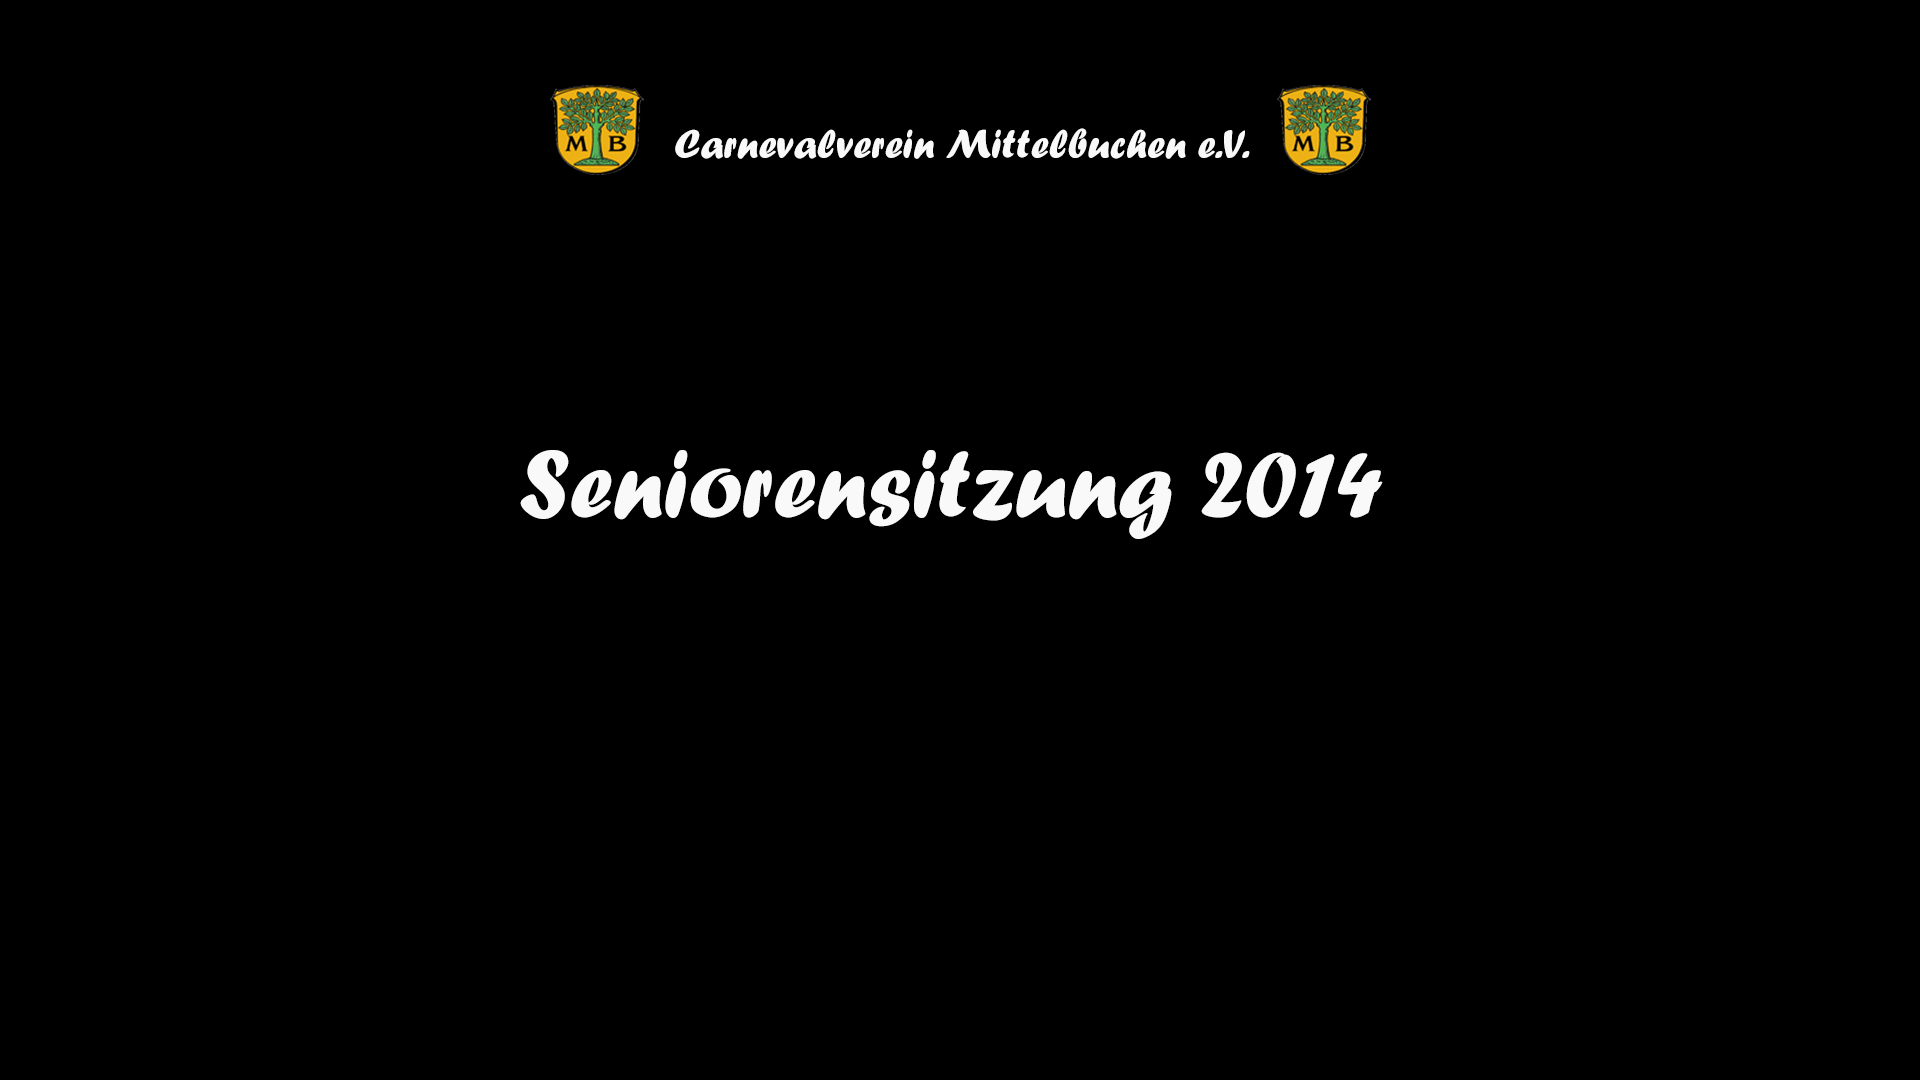 Seniorensitzung 201